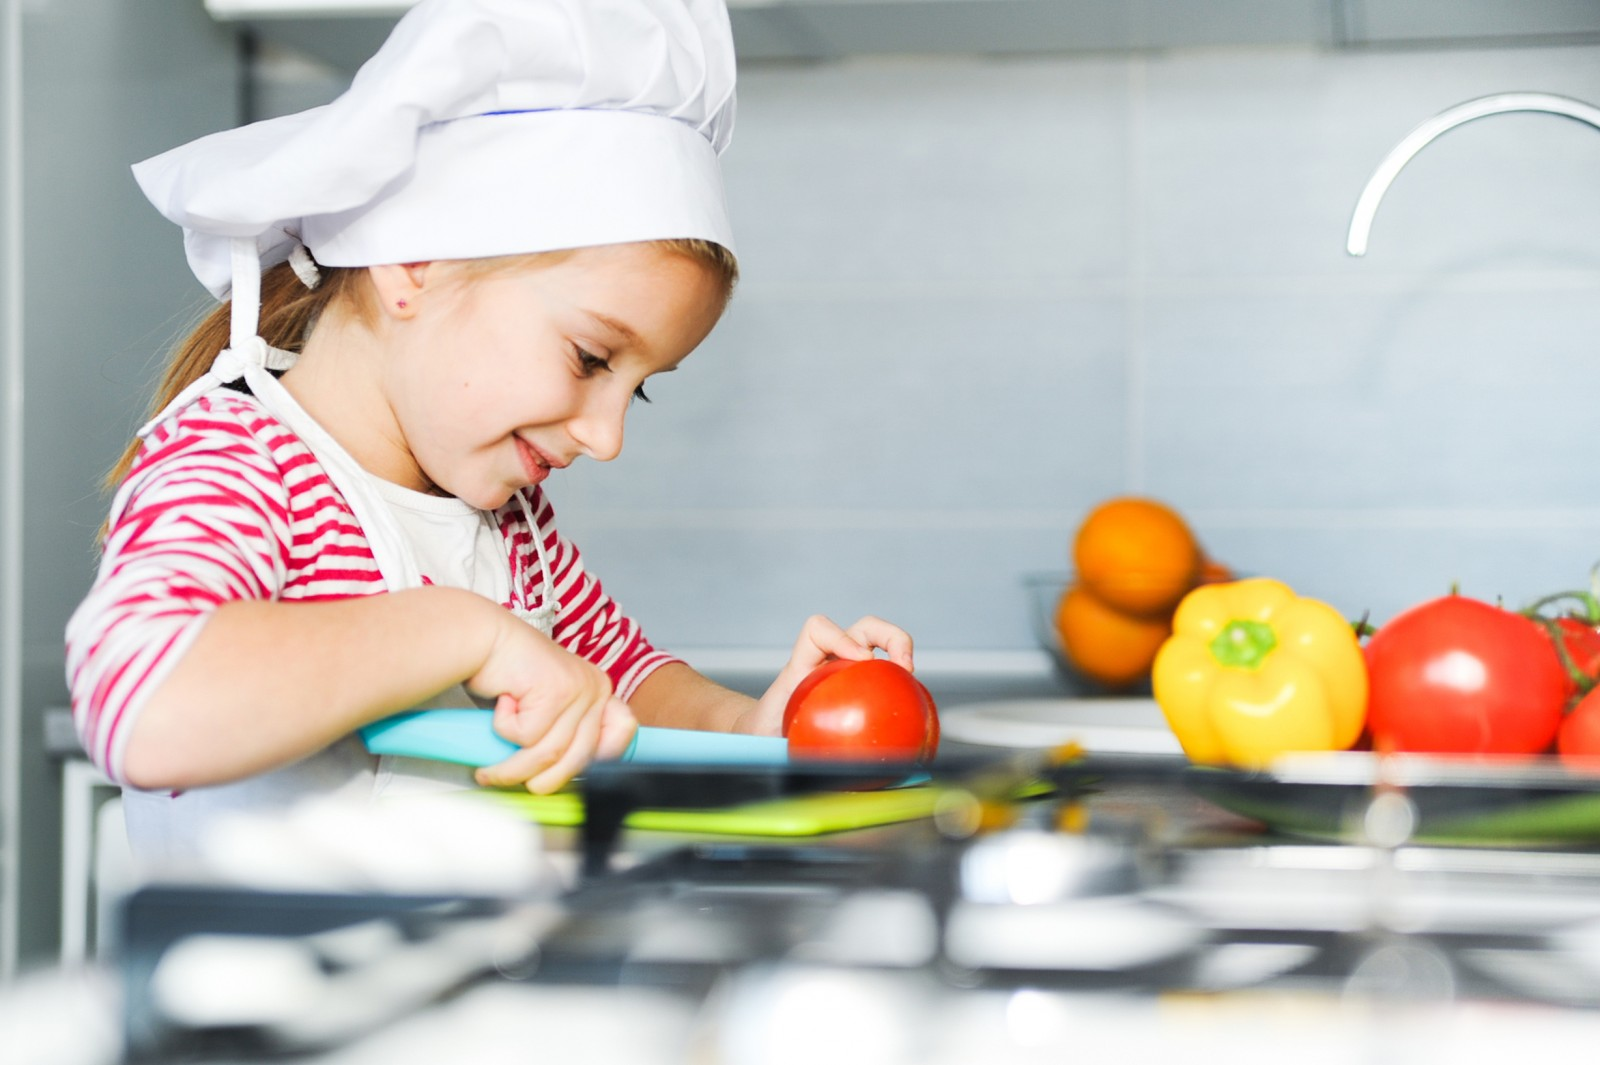 A young girl in a chef's hat chops vegetables